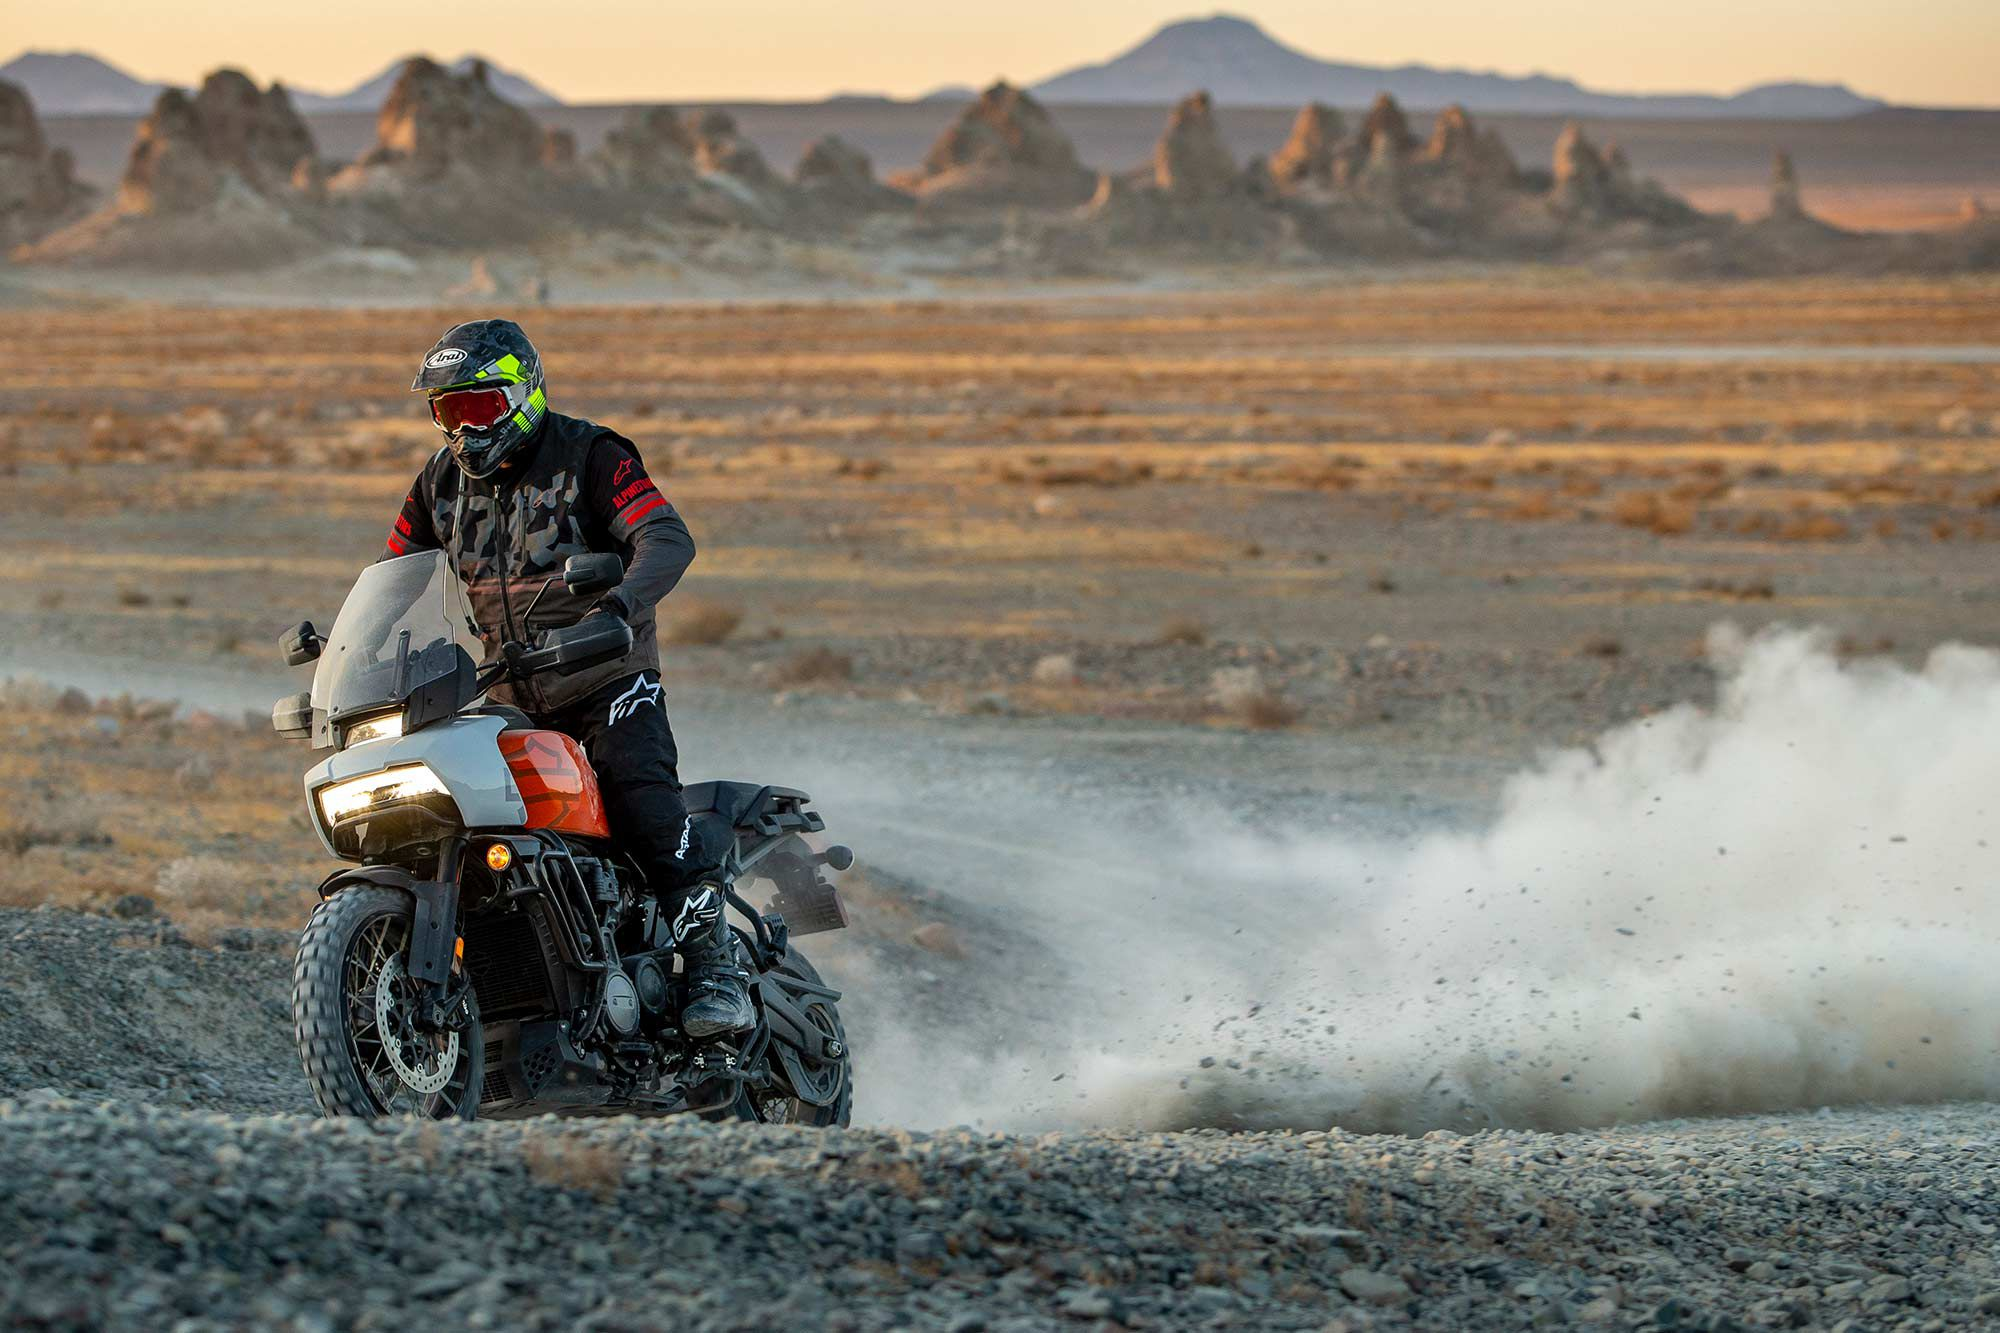 Adventure bikes such as the Harley-Davidson Pan America need a flat torque curve to be usable in a variety of situations.